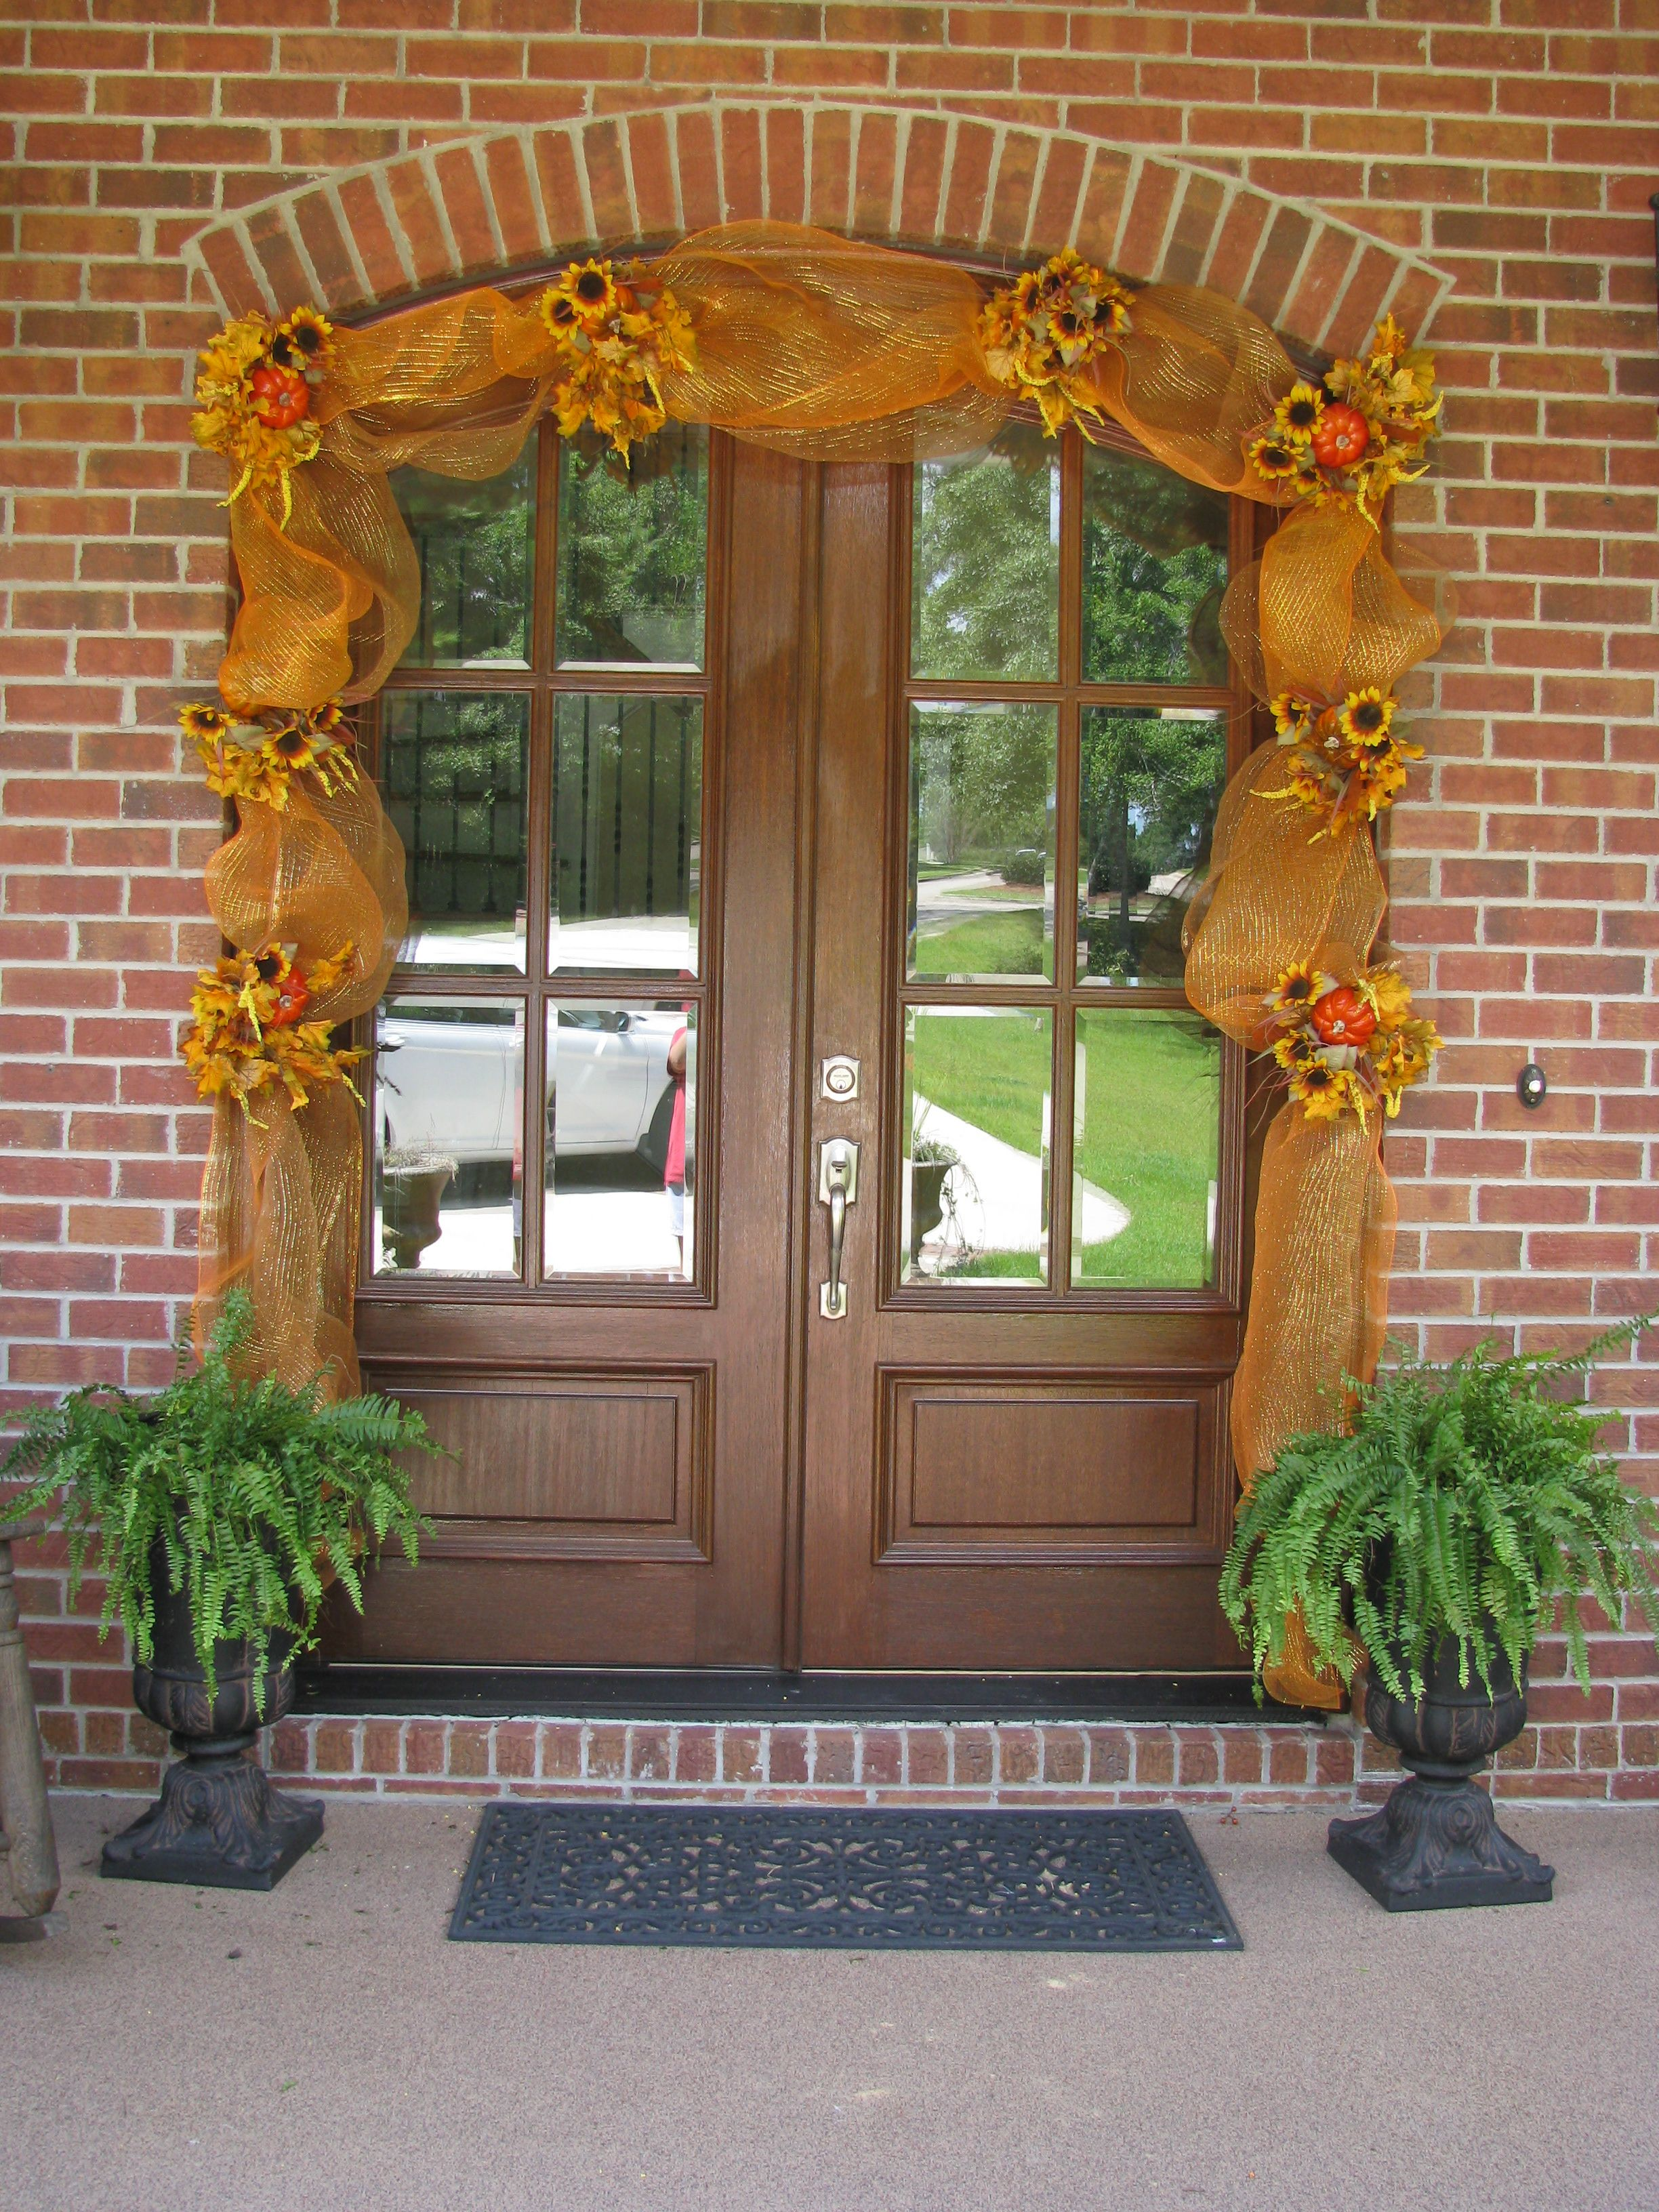 Fall Door Fall Doorholiday Funholiday Decorfall Craftsfront Porcheshappy Fallfall Halloweencurb